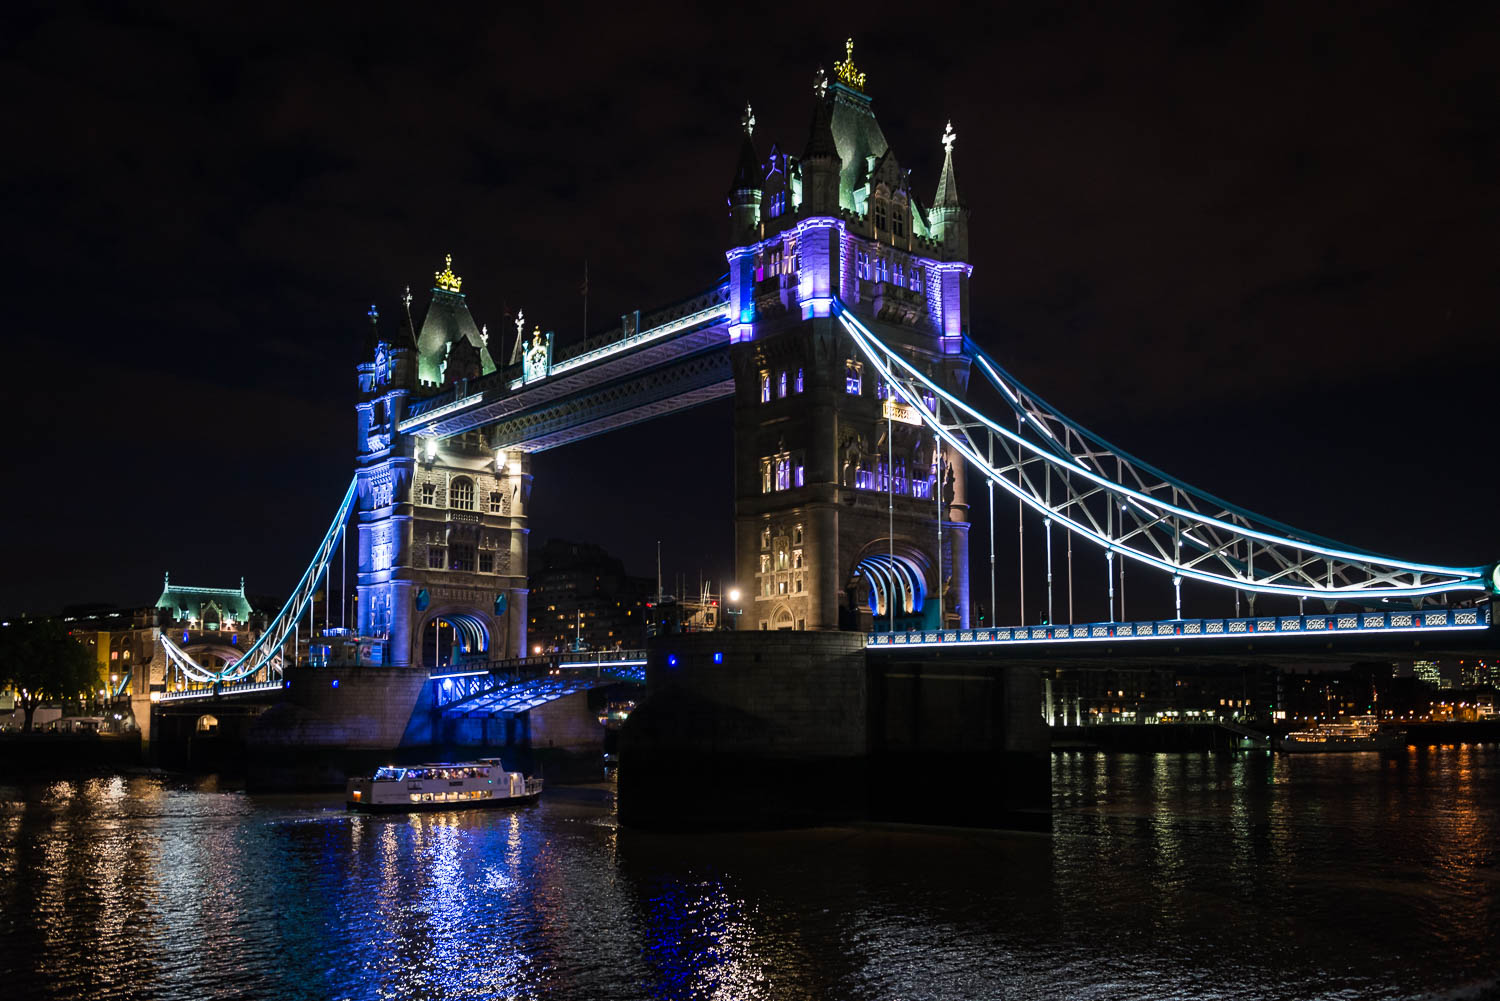 Tower Bridge at Night as a boat travels under the bridge on the River Thames